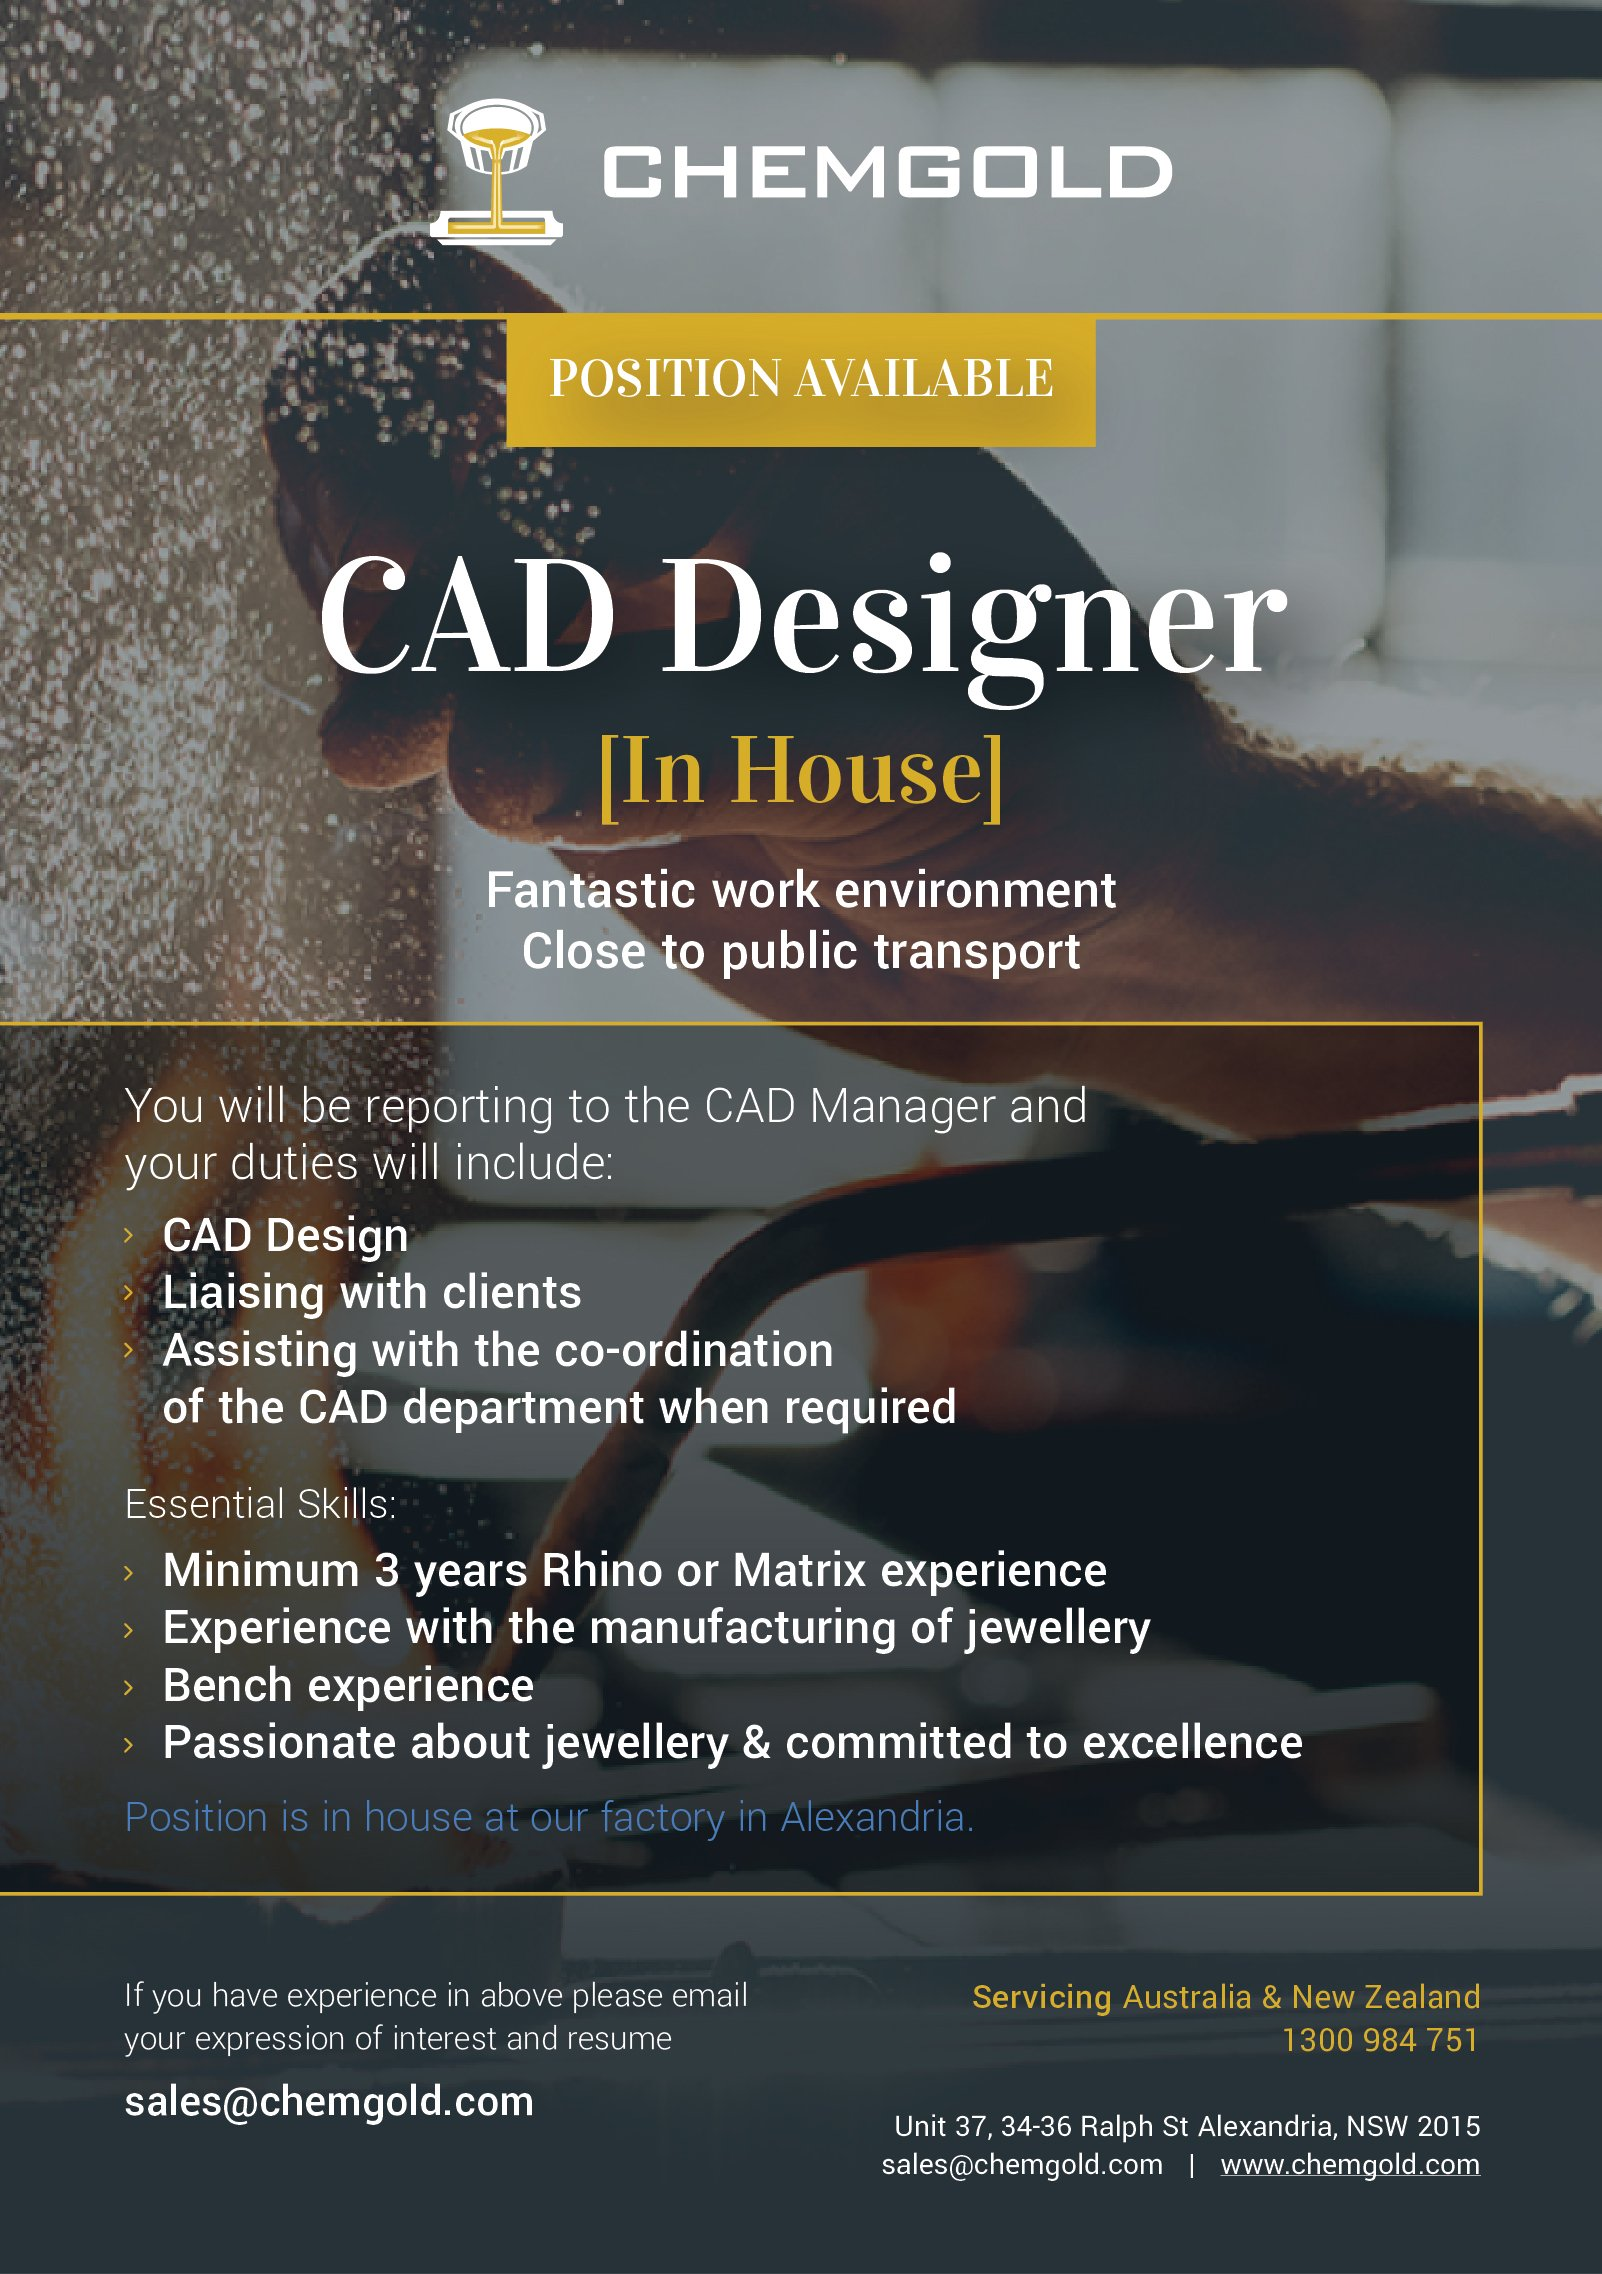 Chemgold Position Available - CAD Designer